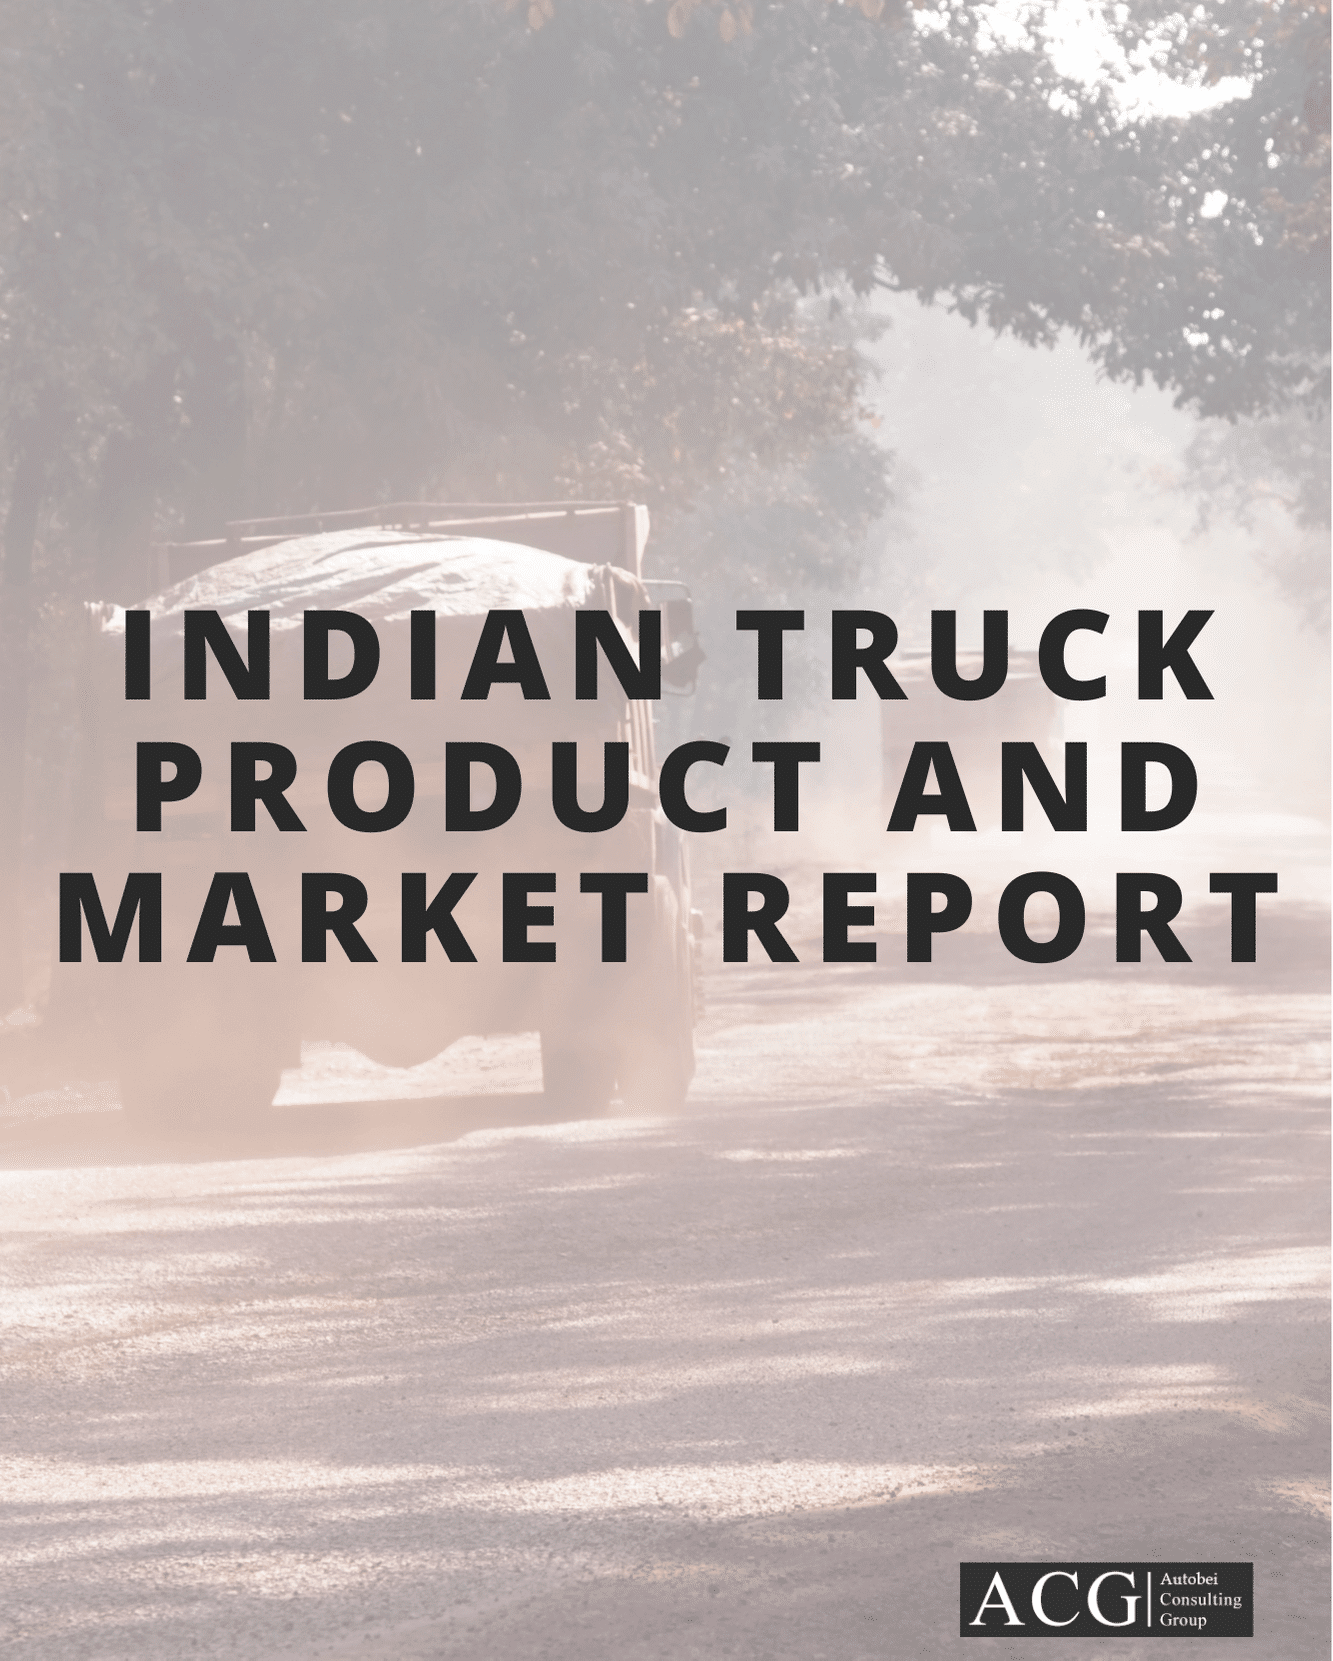 Indian Truck Product and Market Report FY 2021